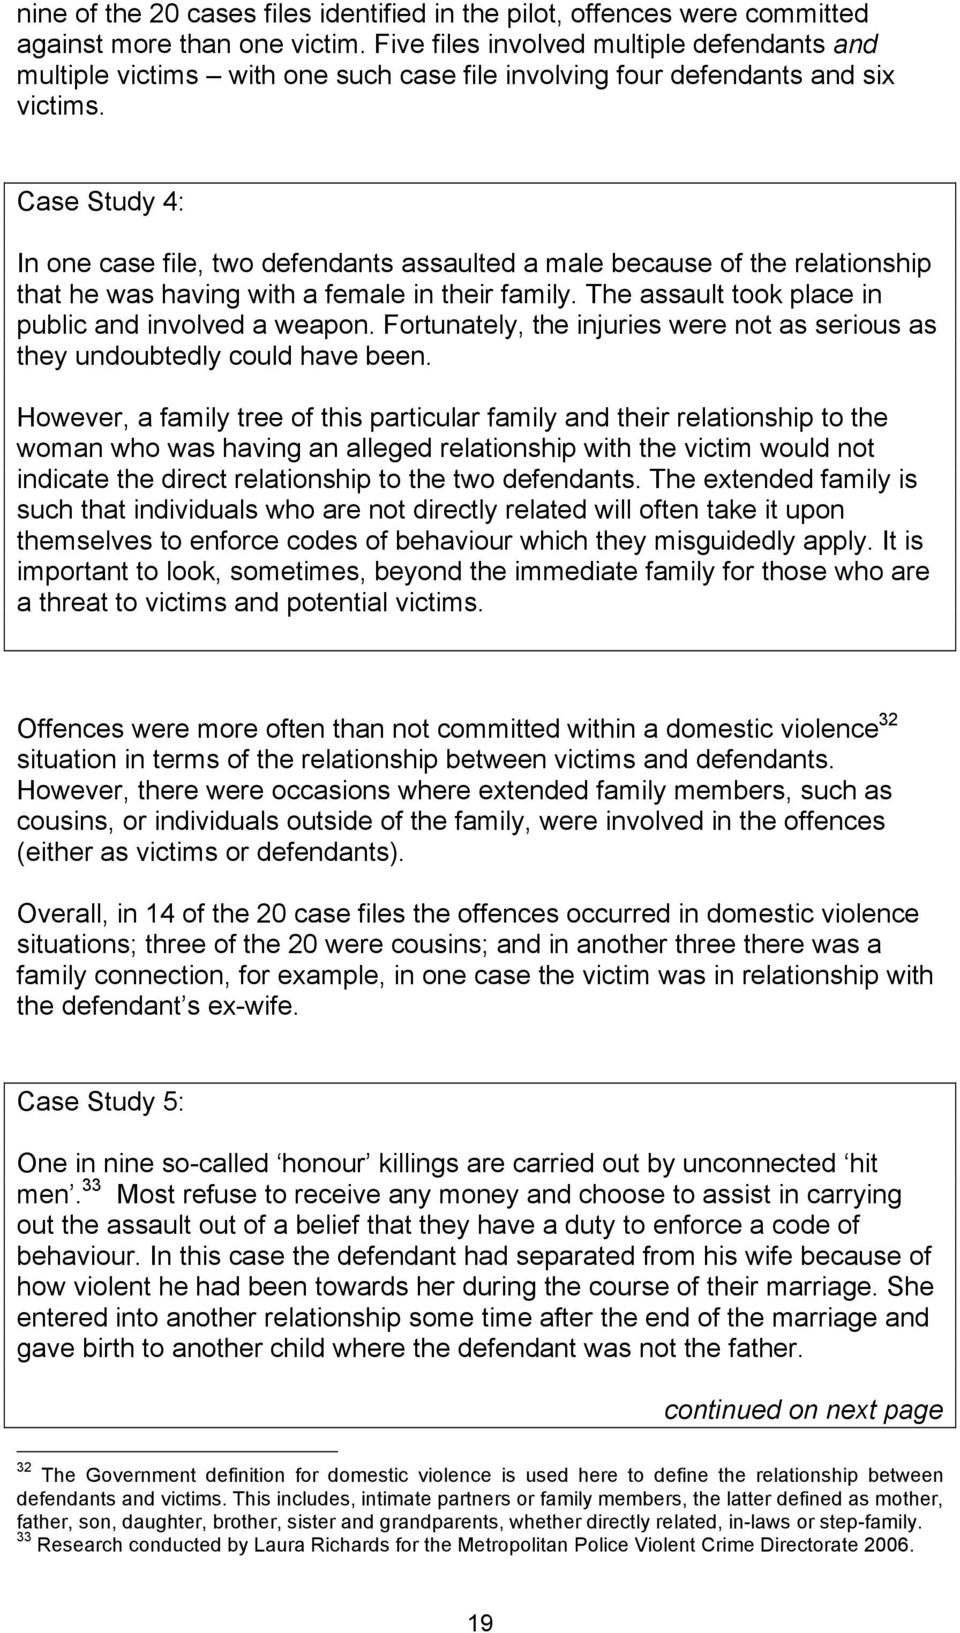 Case Study 4: In one case file, two defendants assaulted a male because of the relationship that he was having with a female in their family. The assault took place in public and involved a weapon.